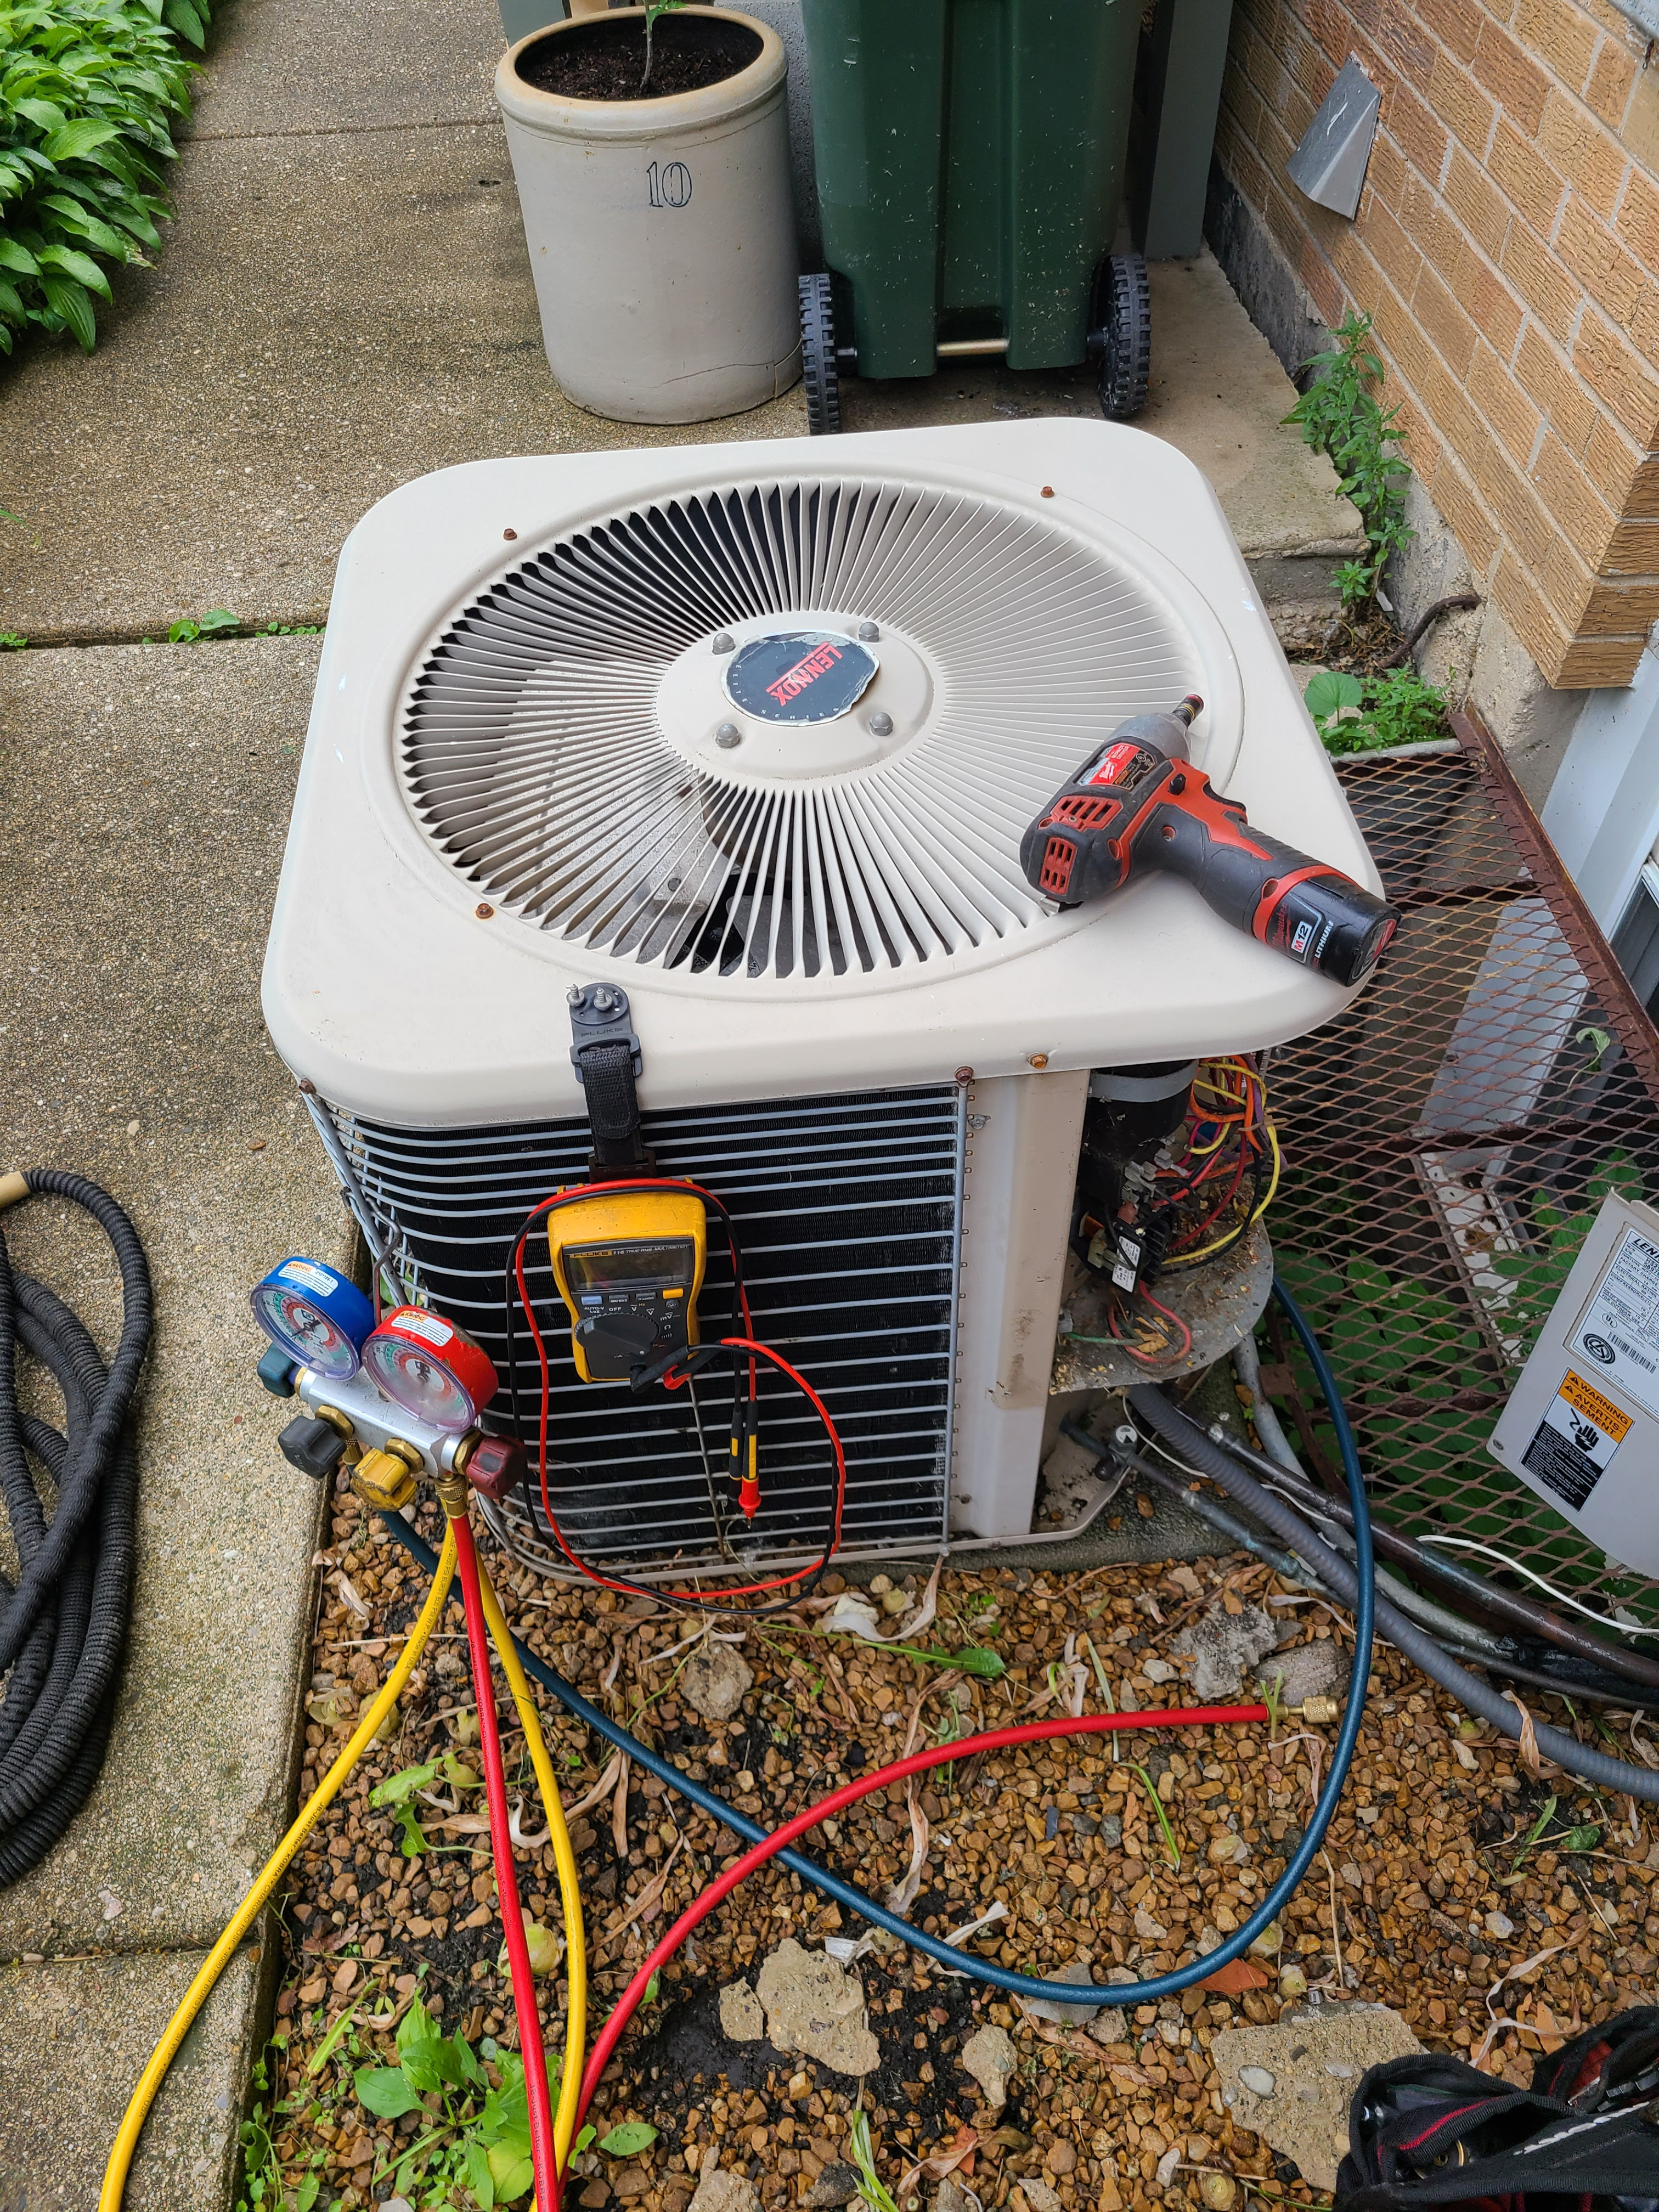 Lennox air conditioning system cleaned and checked. Ready for summer!